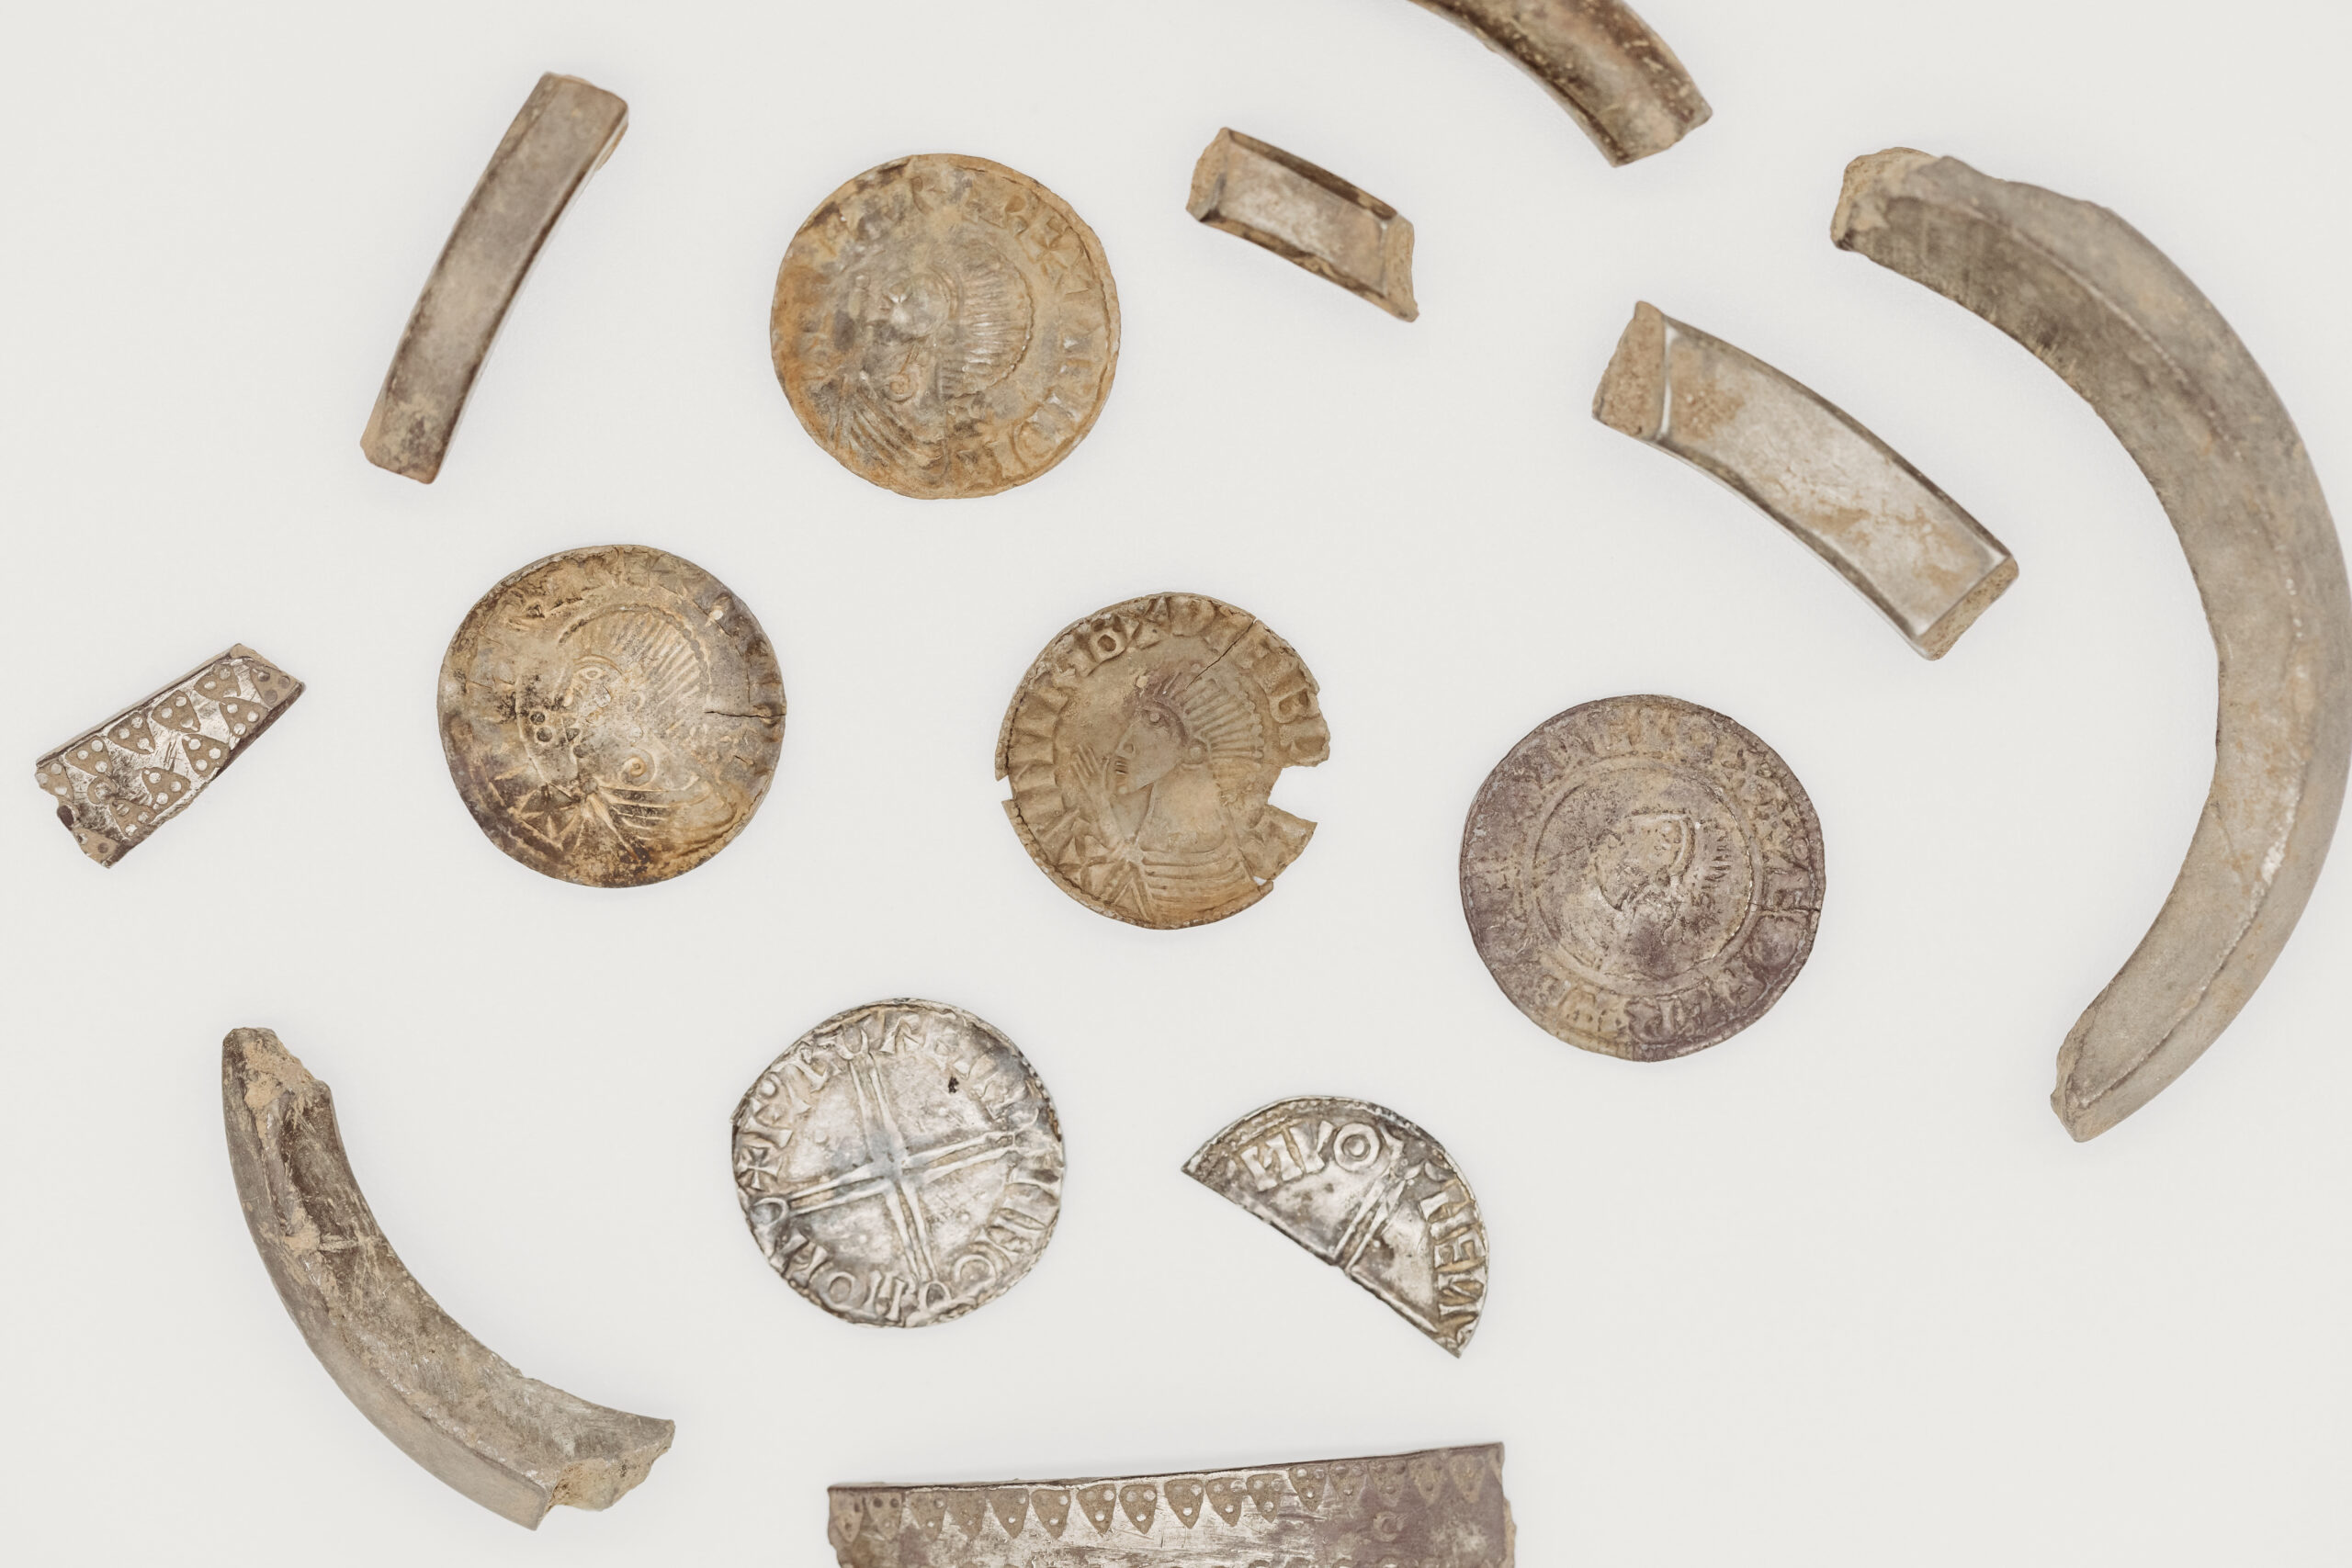 Metal-detectorist unearths Viking coin hoard in Isle of Man